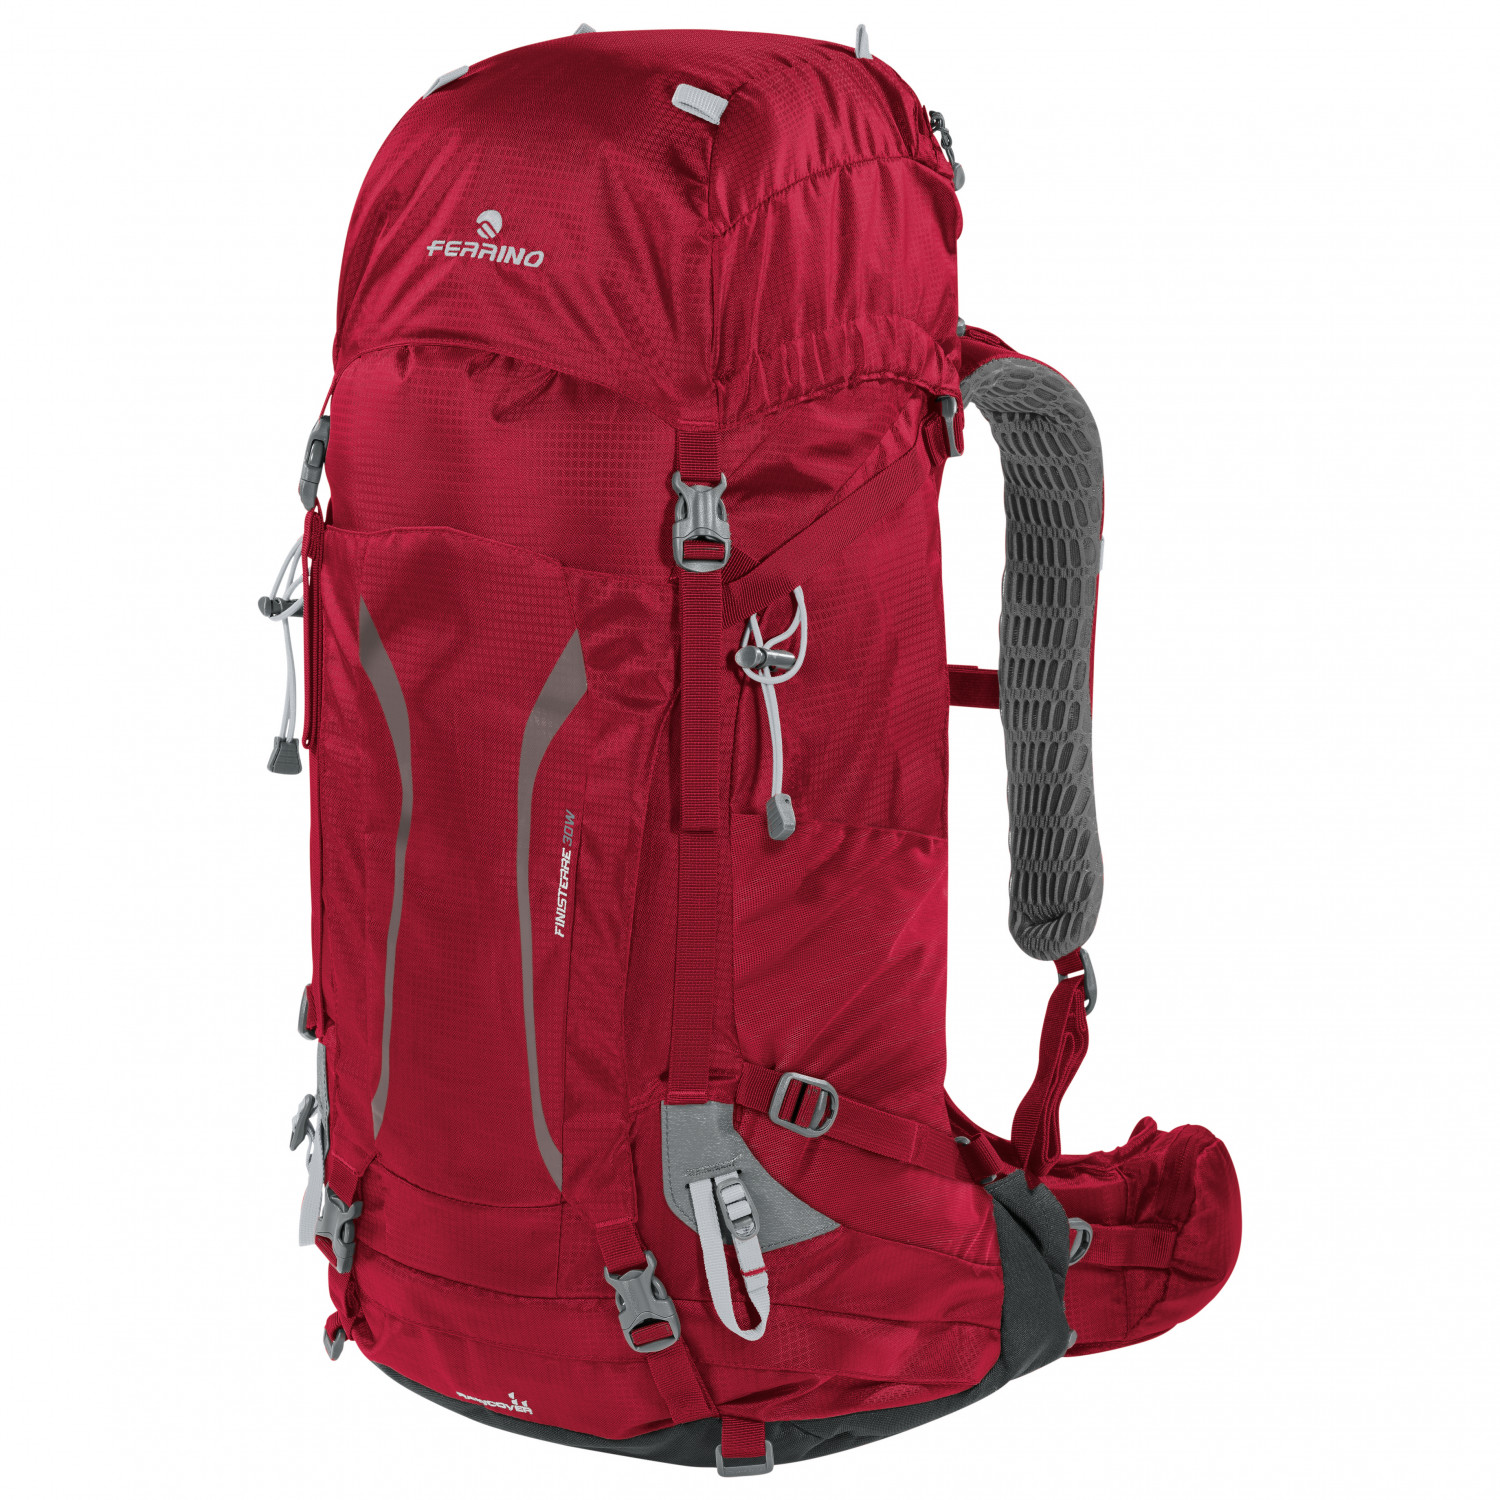 Backpack Mountaineering Finisterre l Ferrino 30 Red30 backpack Lady 5JTKF3ul1c